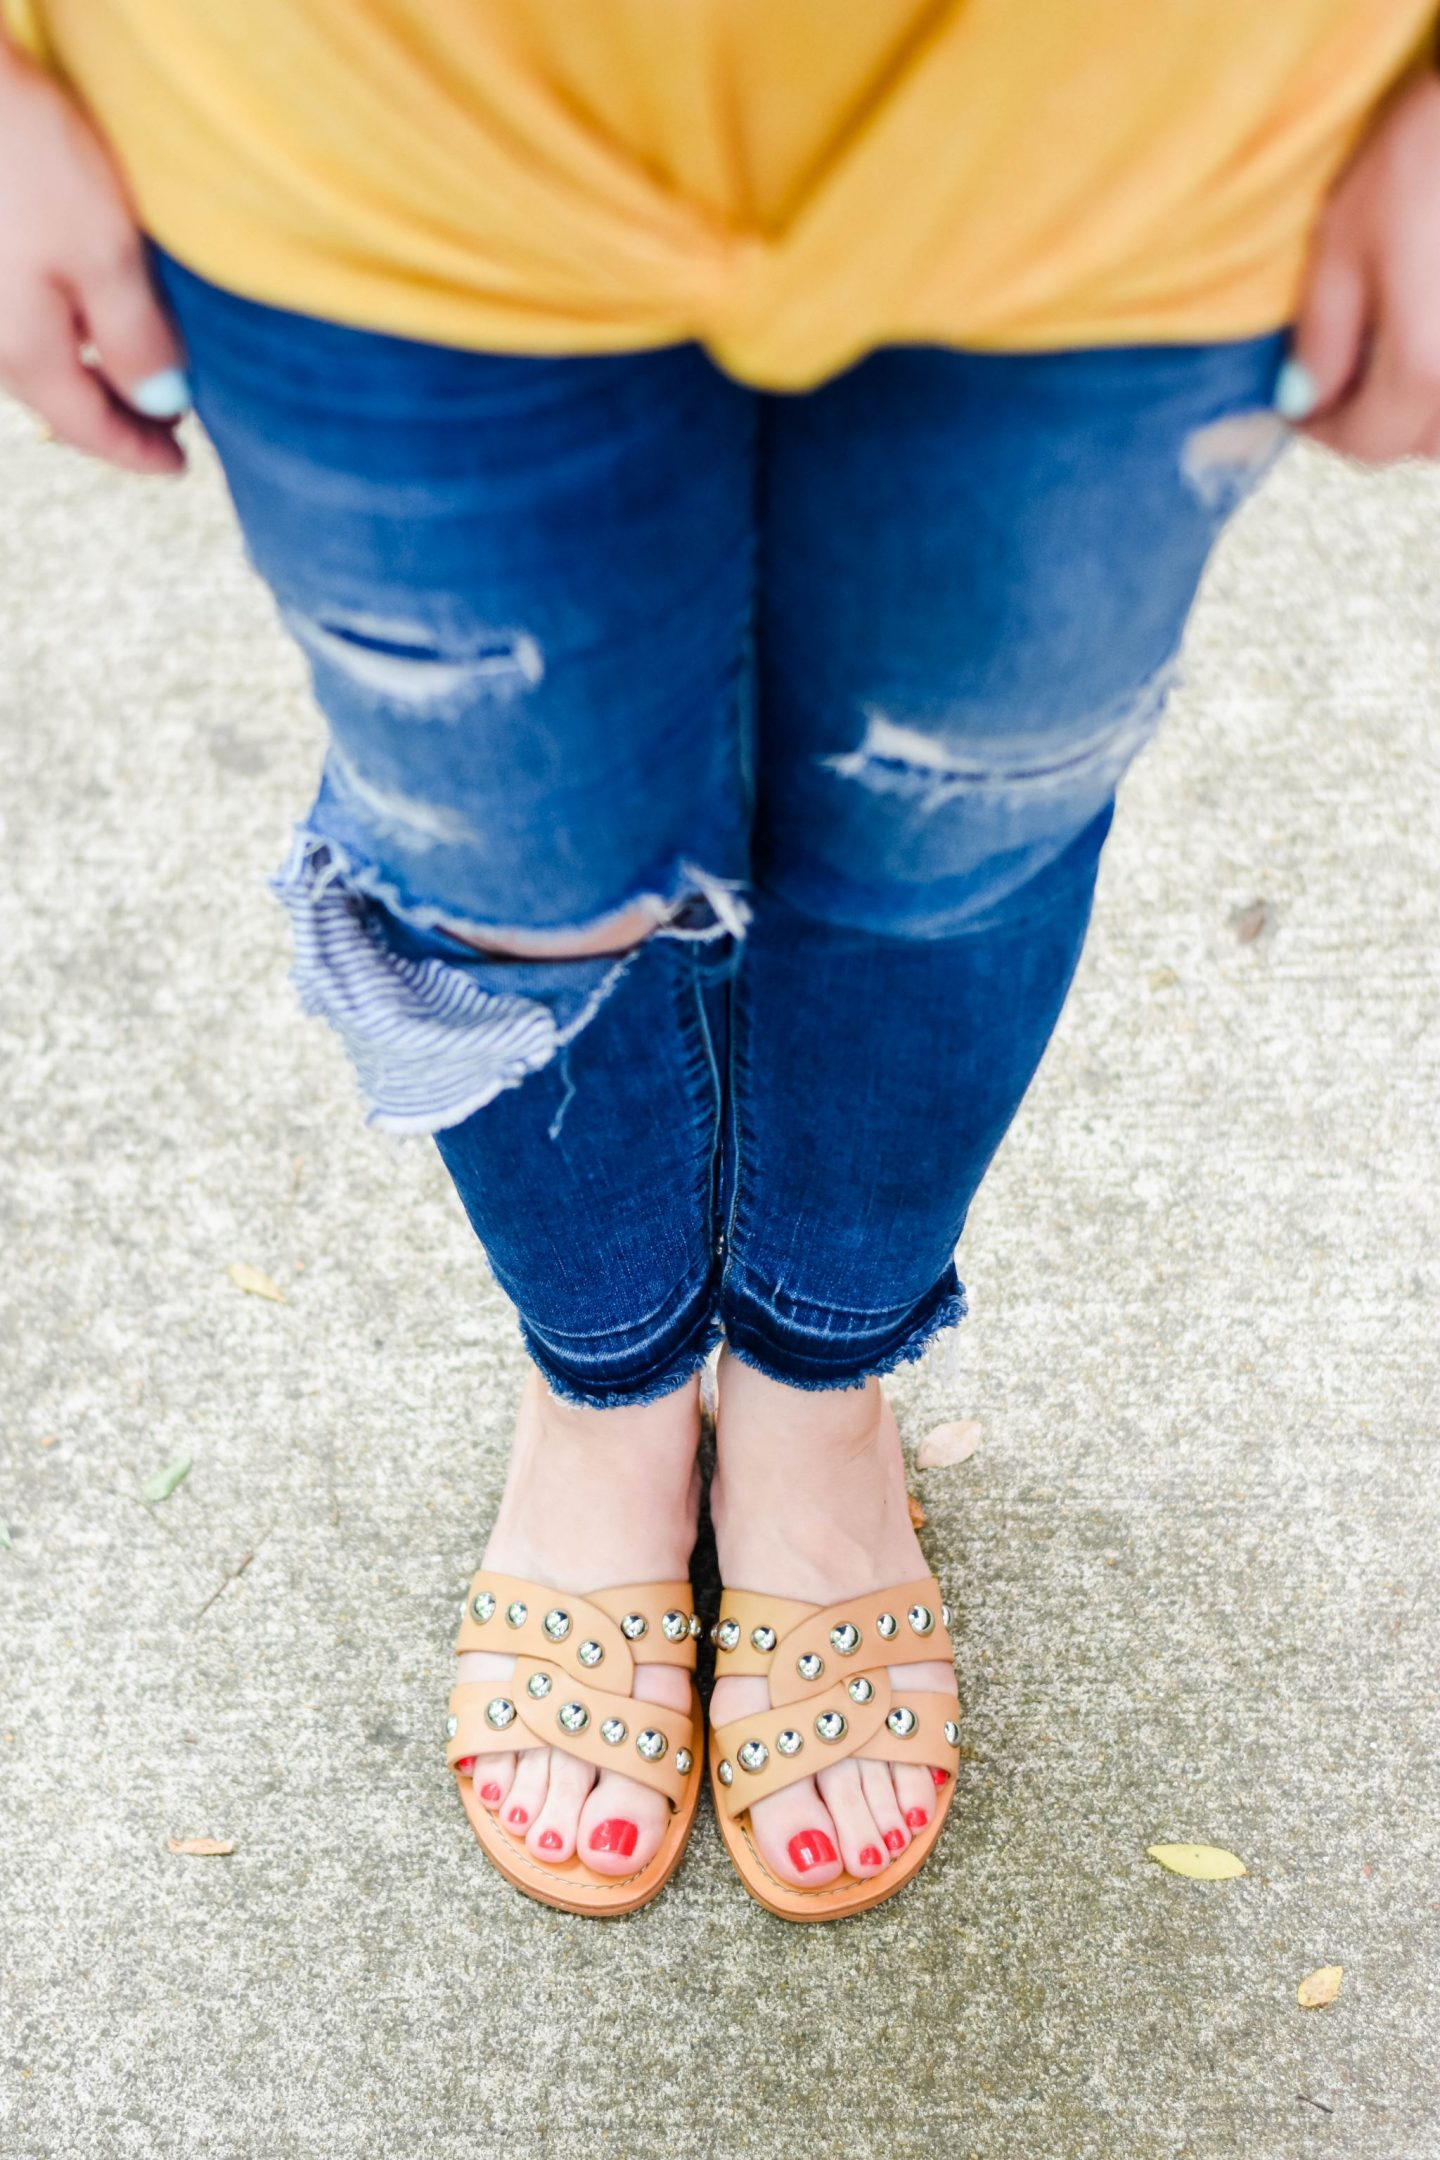 Studded Sandals-@headtotoechic-Head to Toe Chic